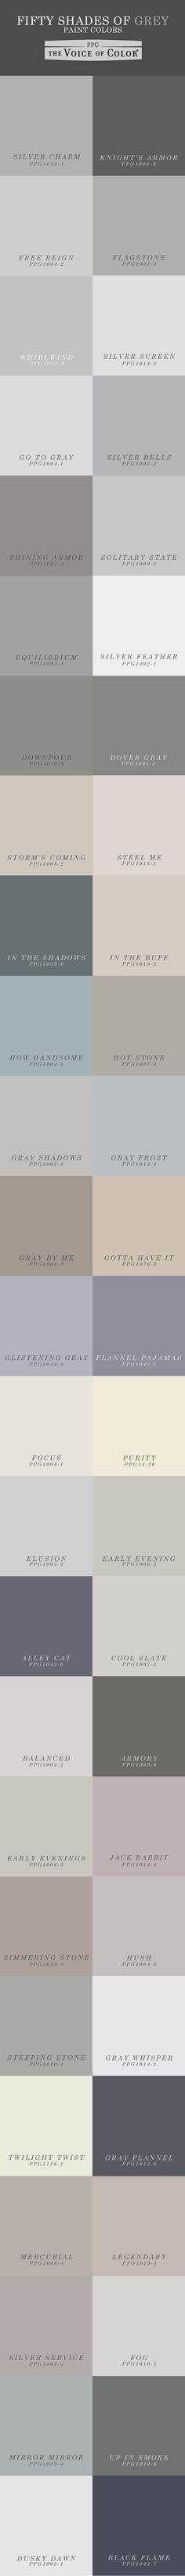 1000 images about 50 shades of grey paint on pinterest for Shades of neutral colors